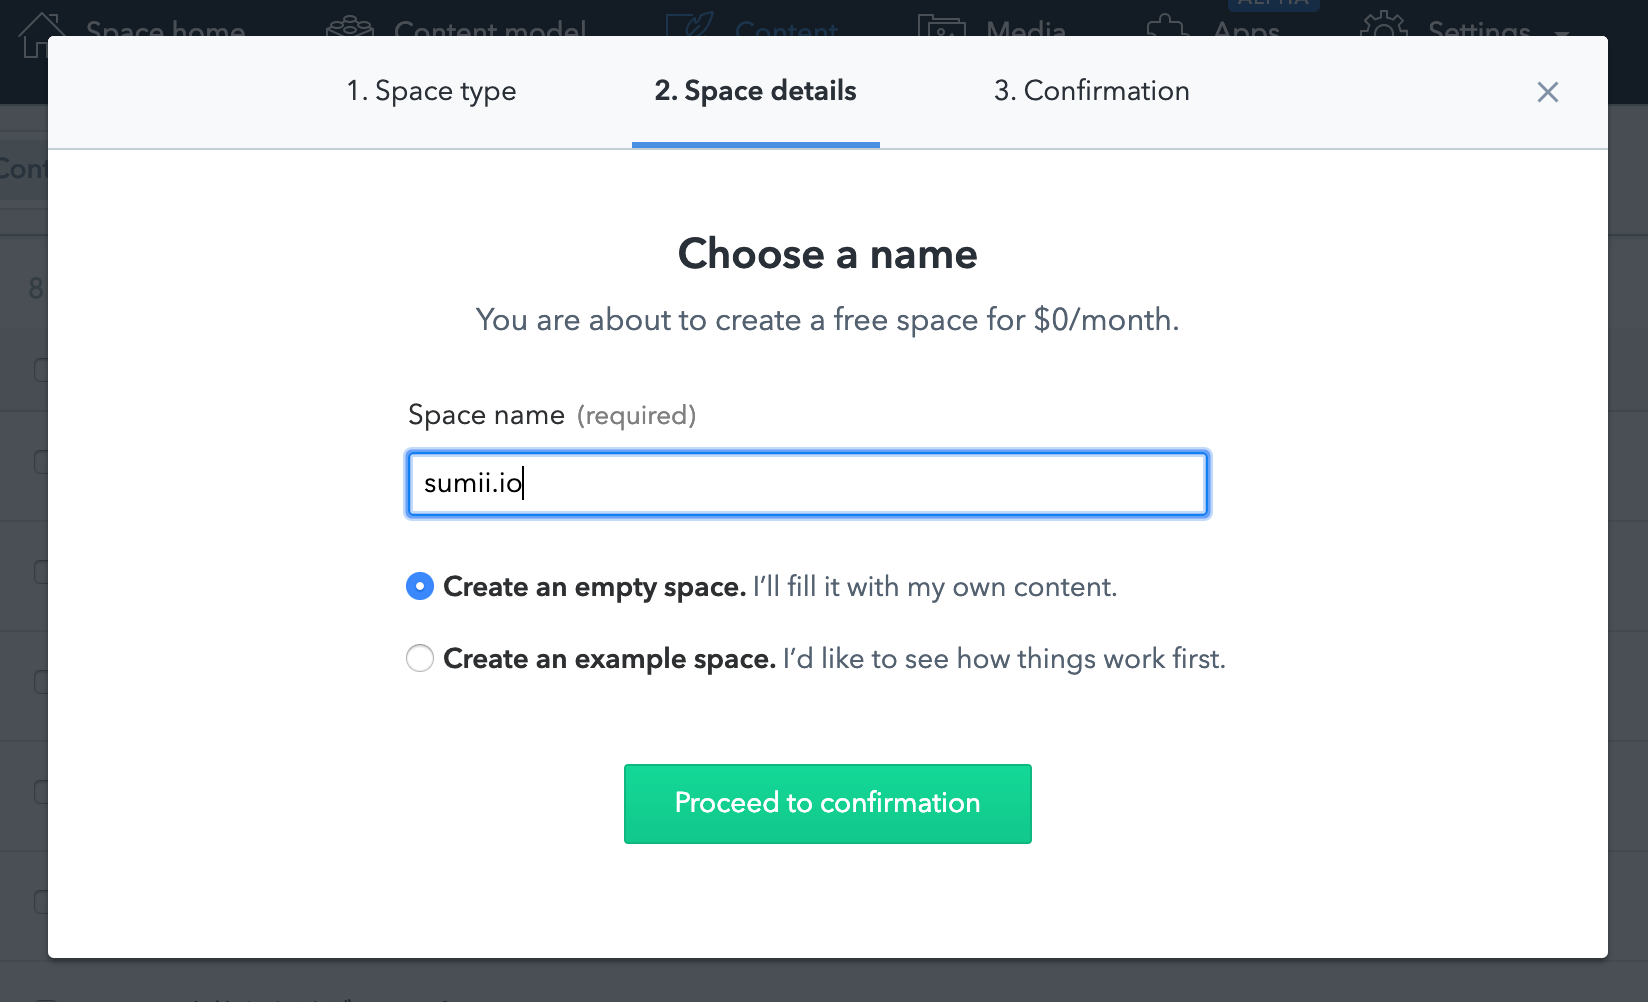 contentful-space-details